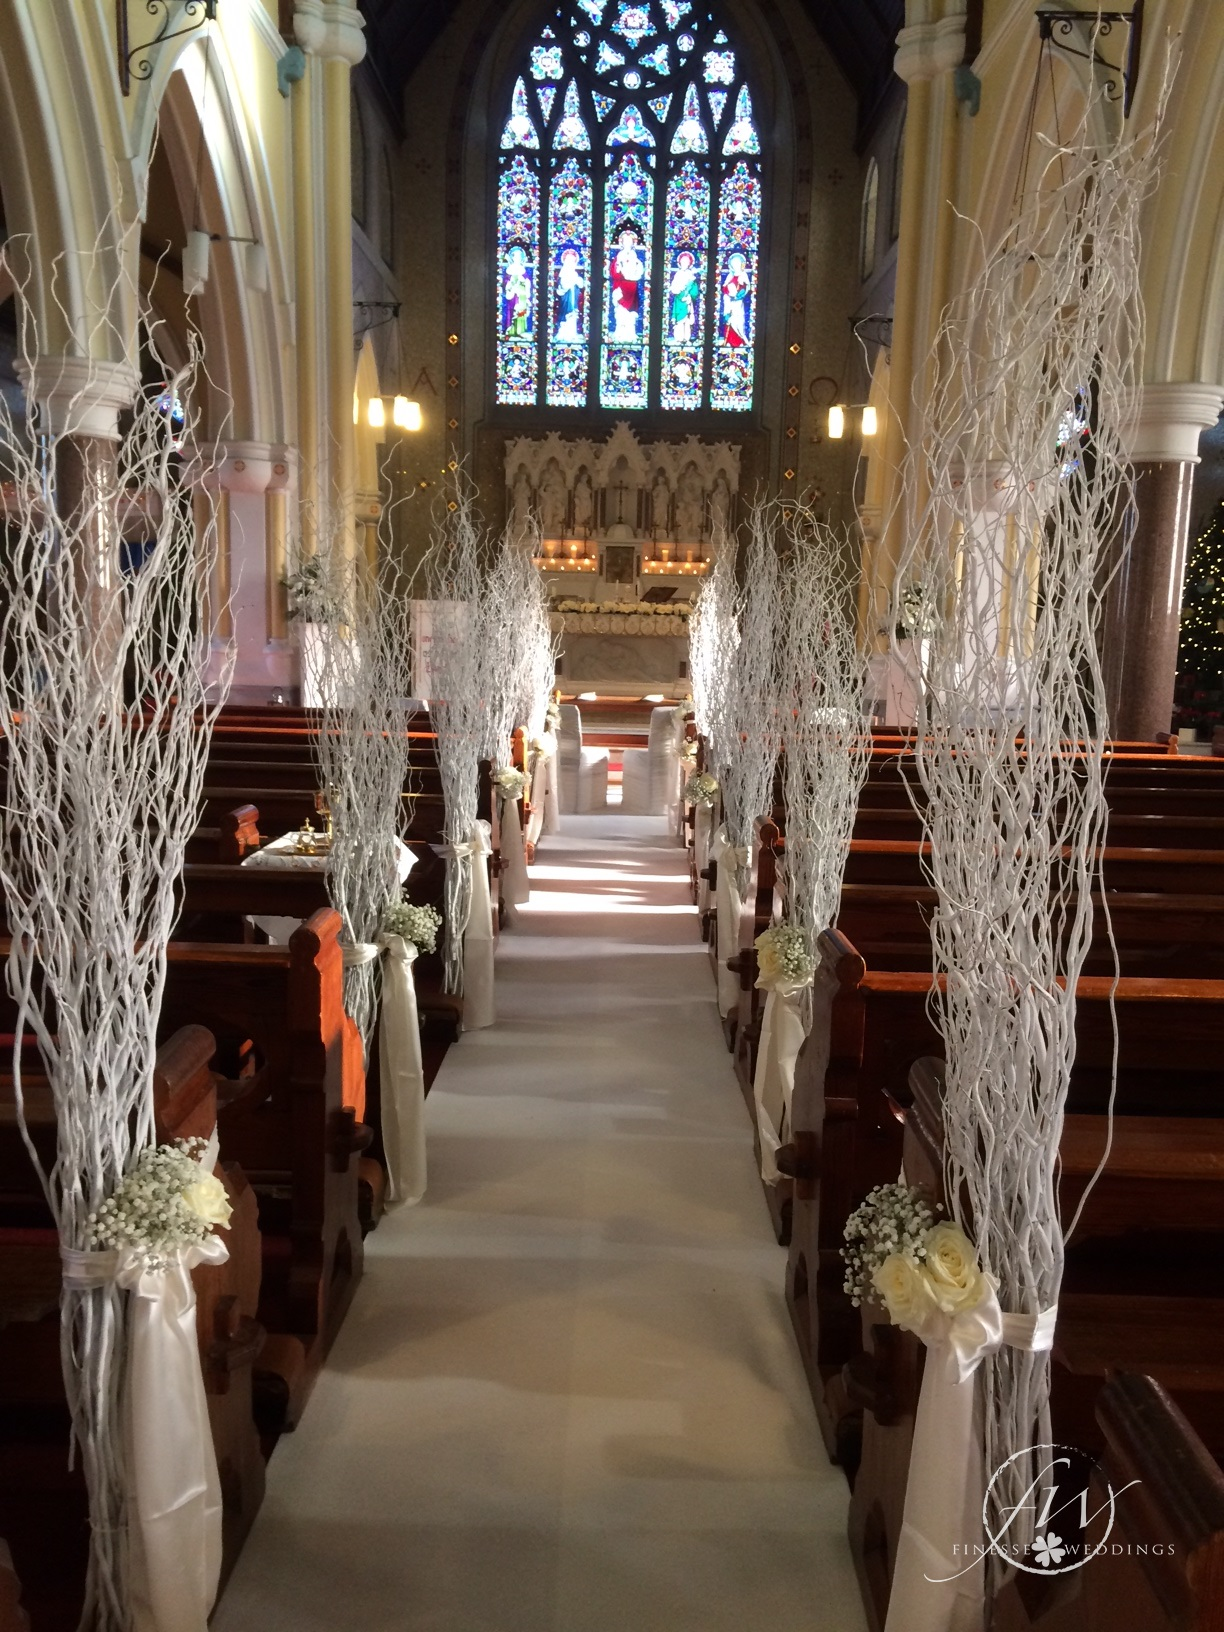 Winter church wedding decorations wedding ideas winter winter church wedding decorations ph email info finesseweddings ie showroom unit c junglespirit Images